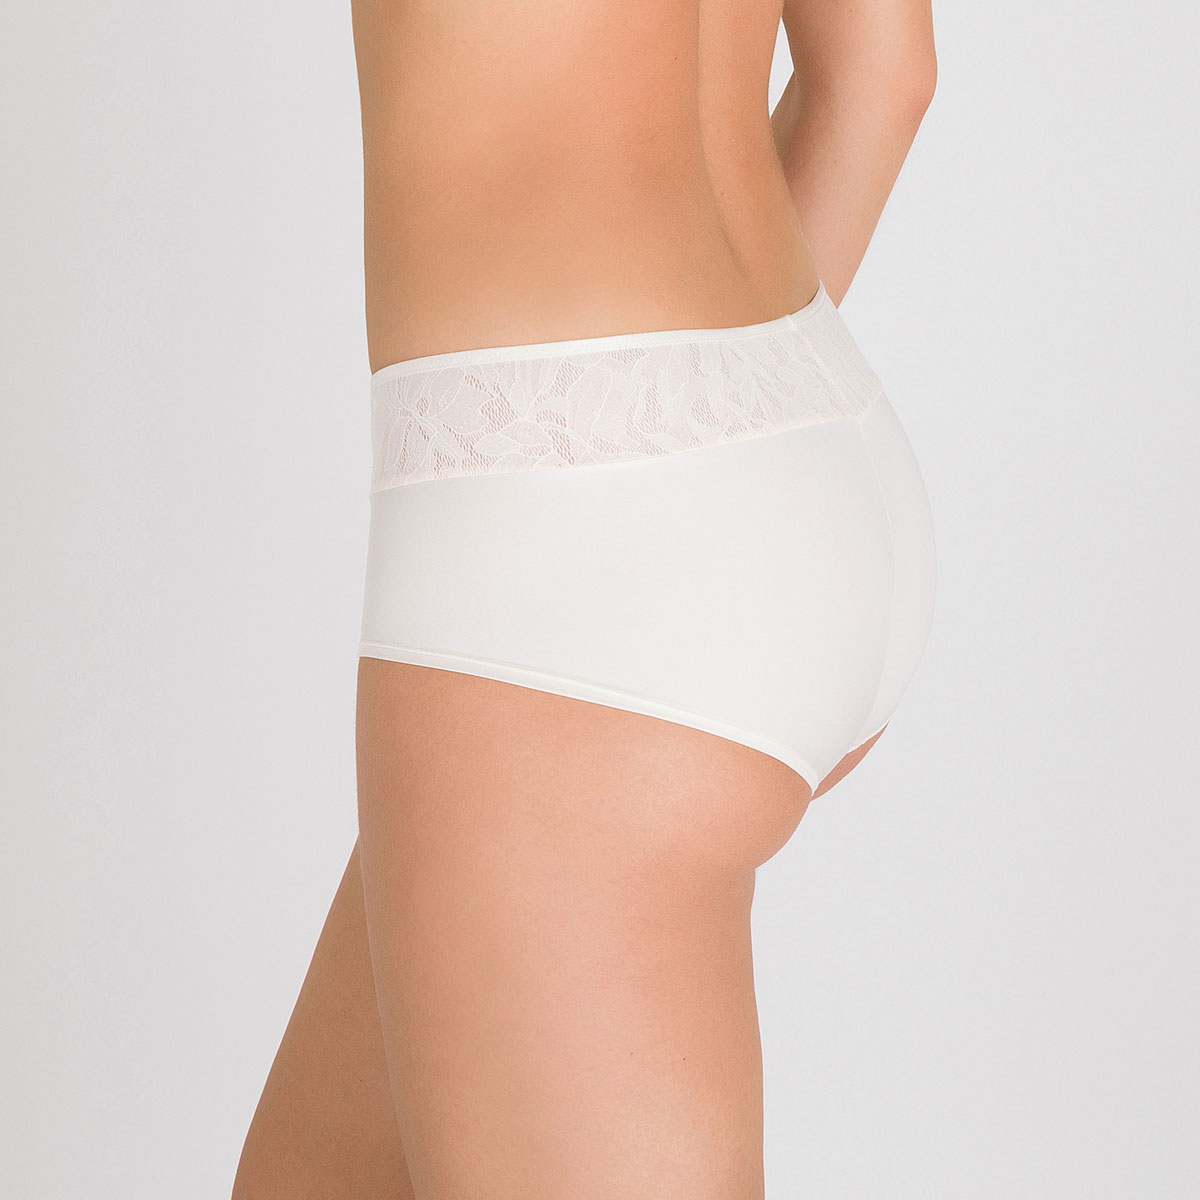 Shorts in White Blush - Ideal Beauty Lace, , PLAYTEX